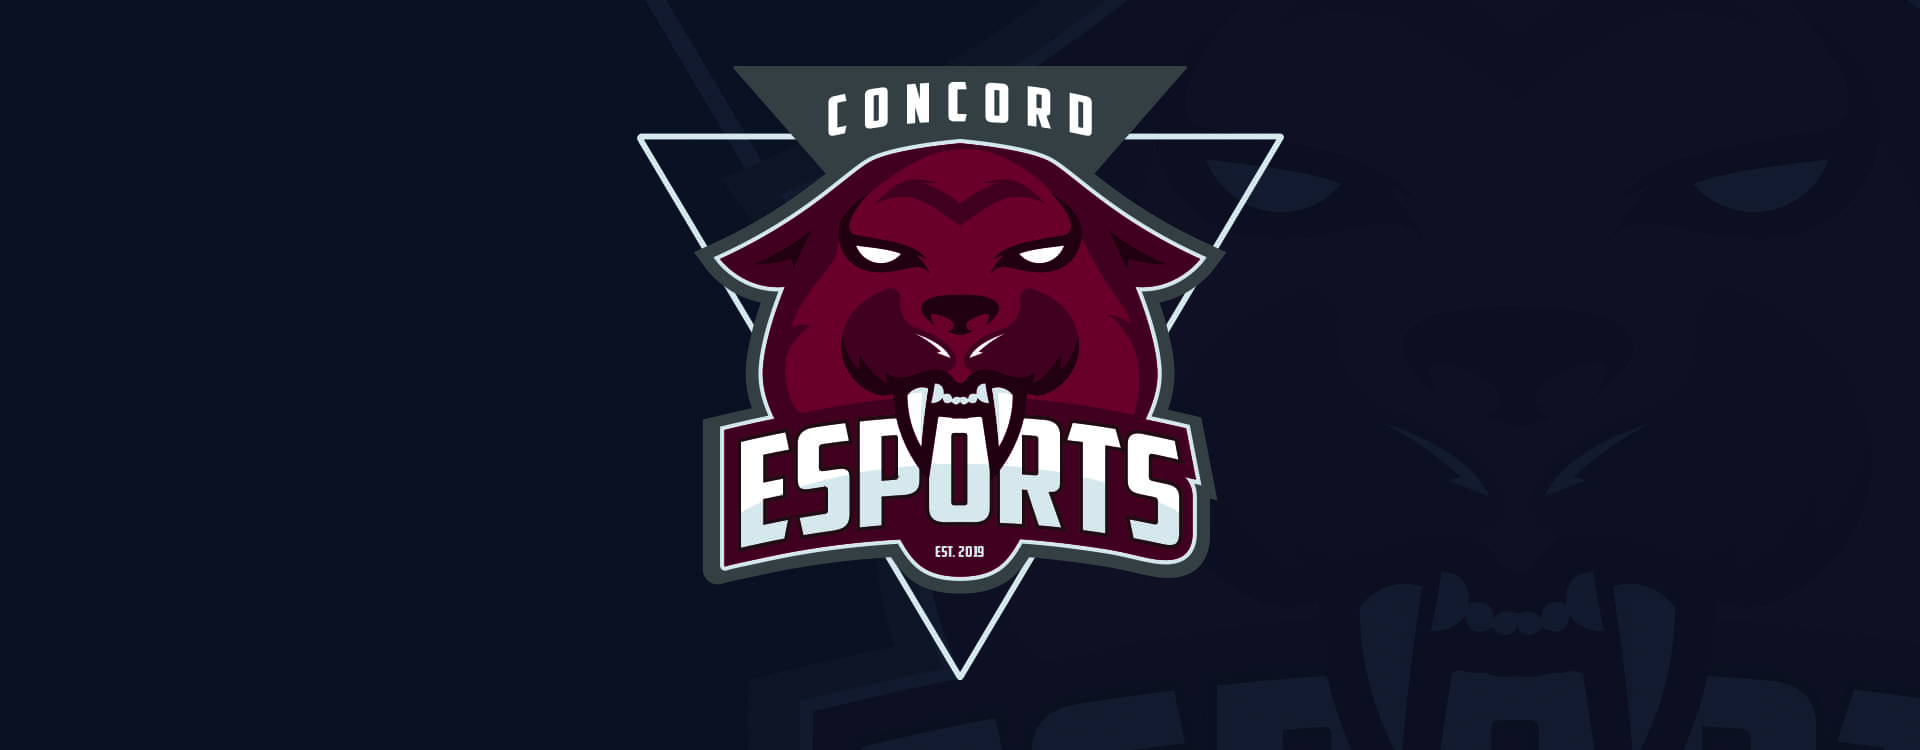 Concord University Varsity E Sports logo, Mountain Lion